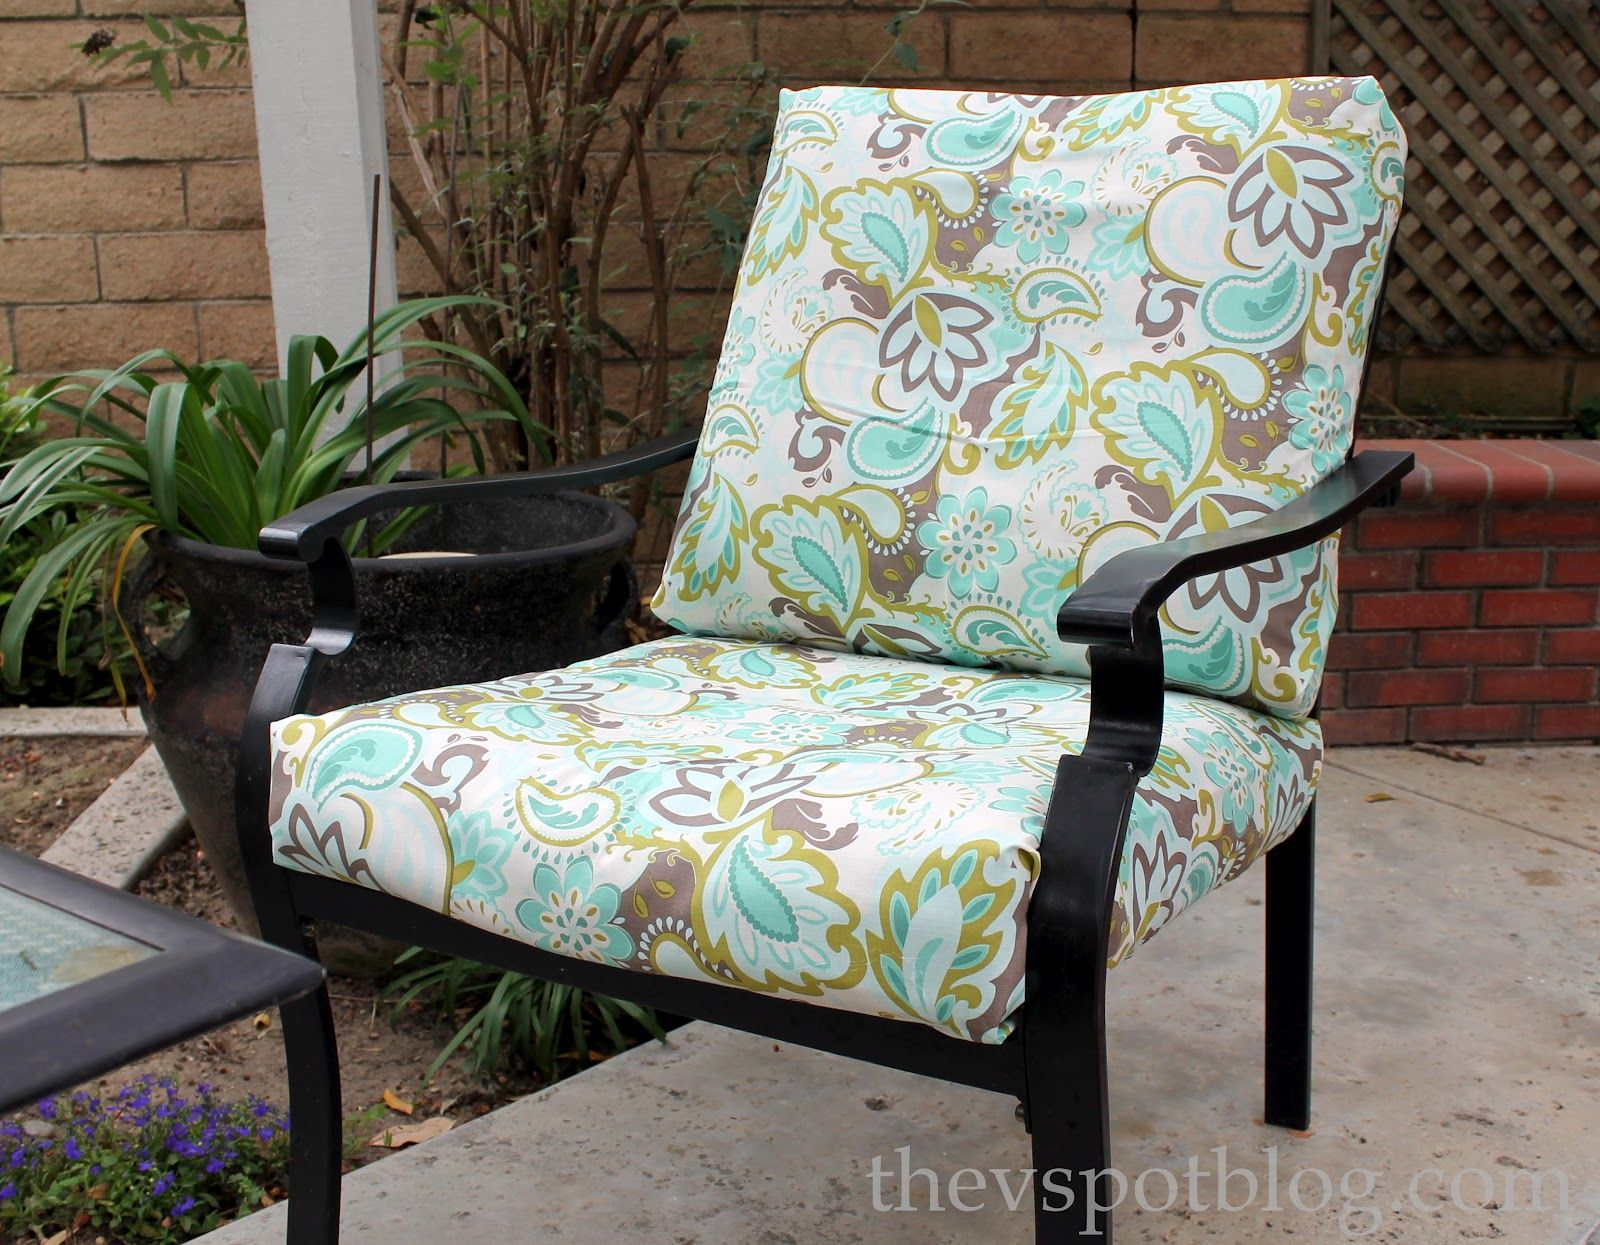 Upholstery for the lazy girl for those who have no sewing